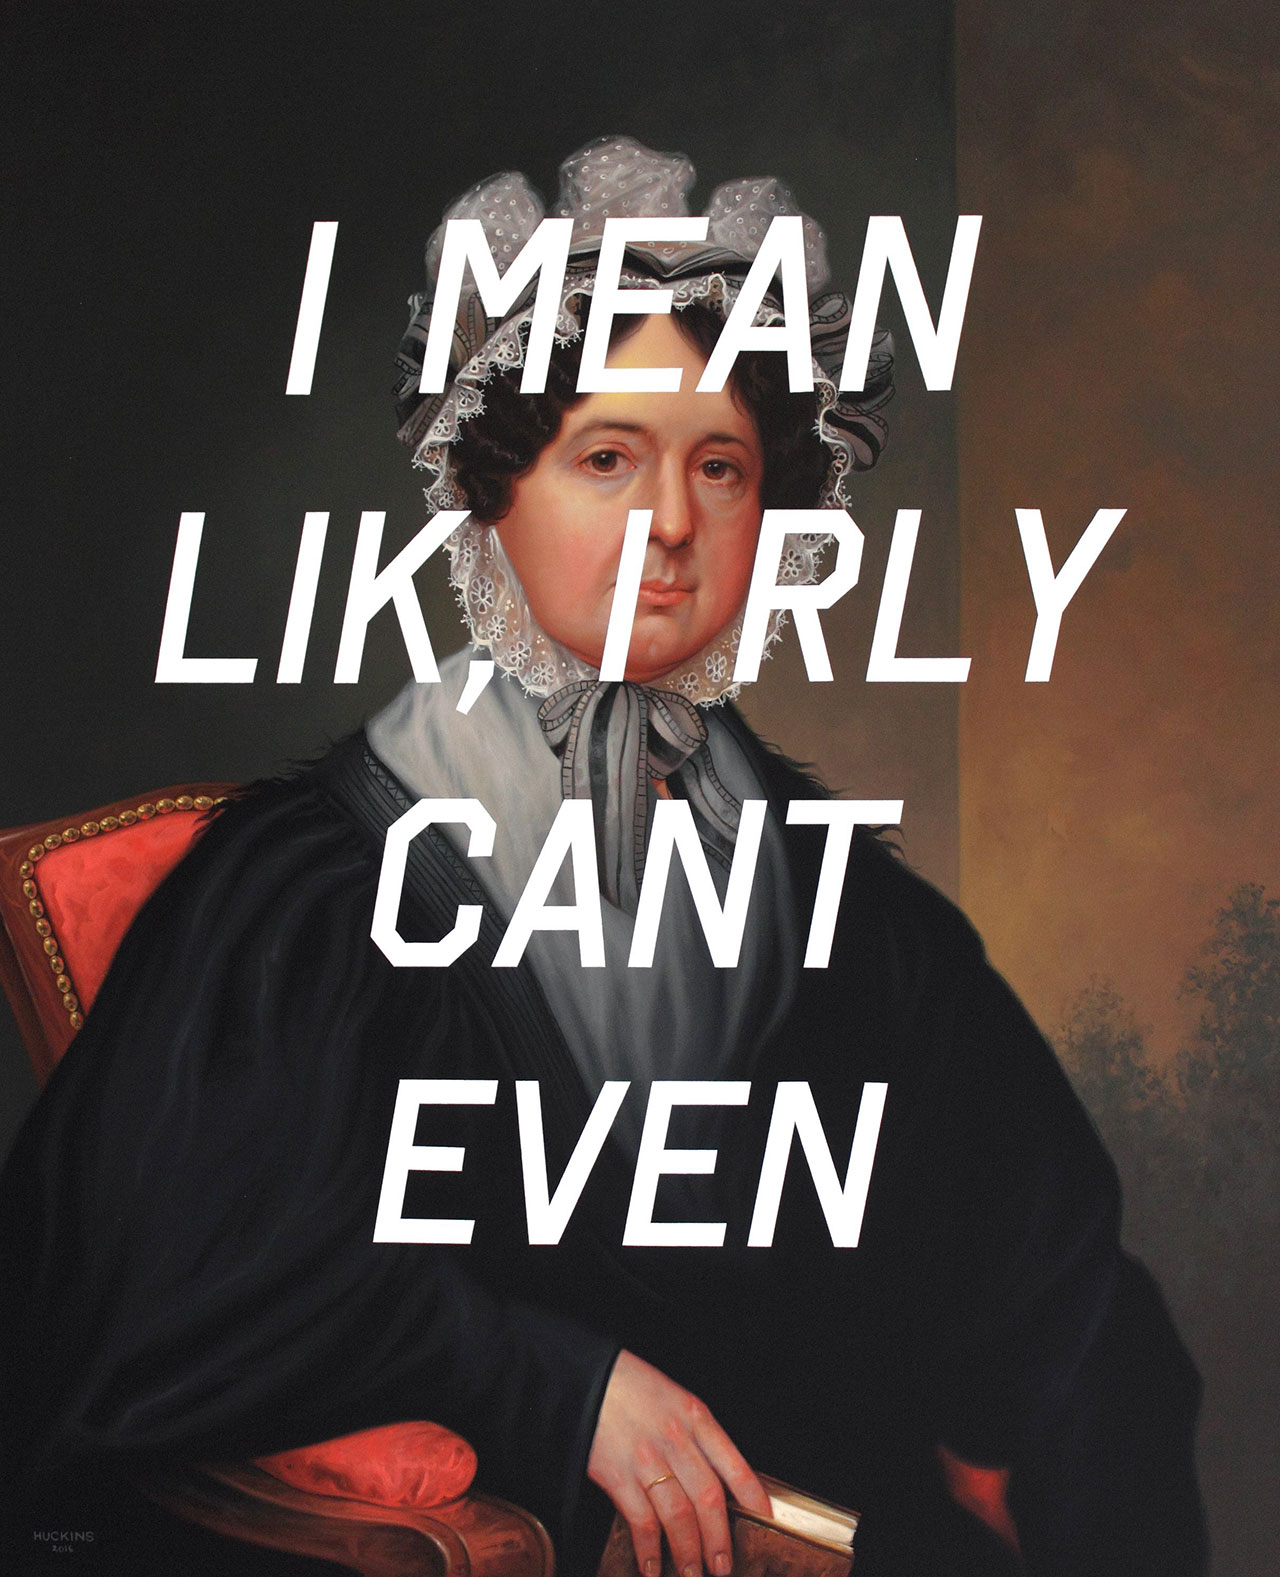 Shawn Huckins, Mrs. Gideon Tucker: I Mean, Like, I Really Can't Even, acrylic on canvas, 44 x 36 in (112 x 91 cm), 2016. Private collection.